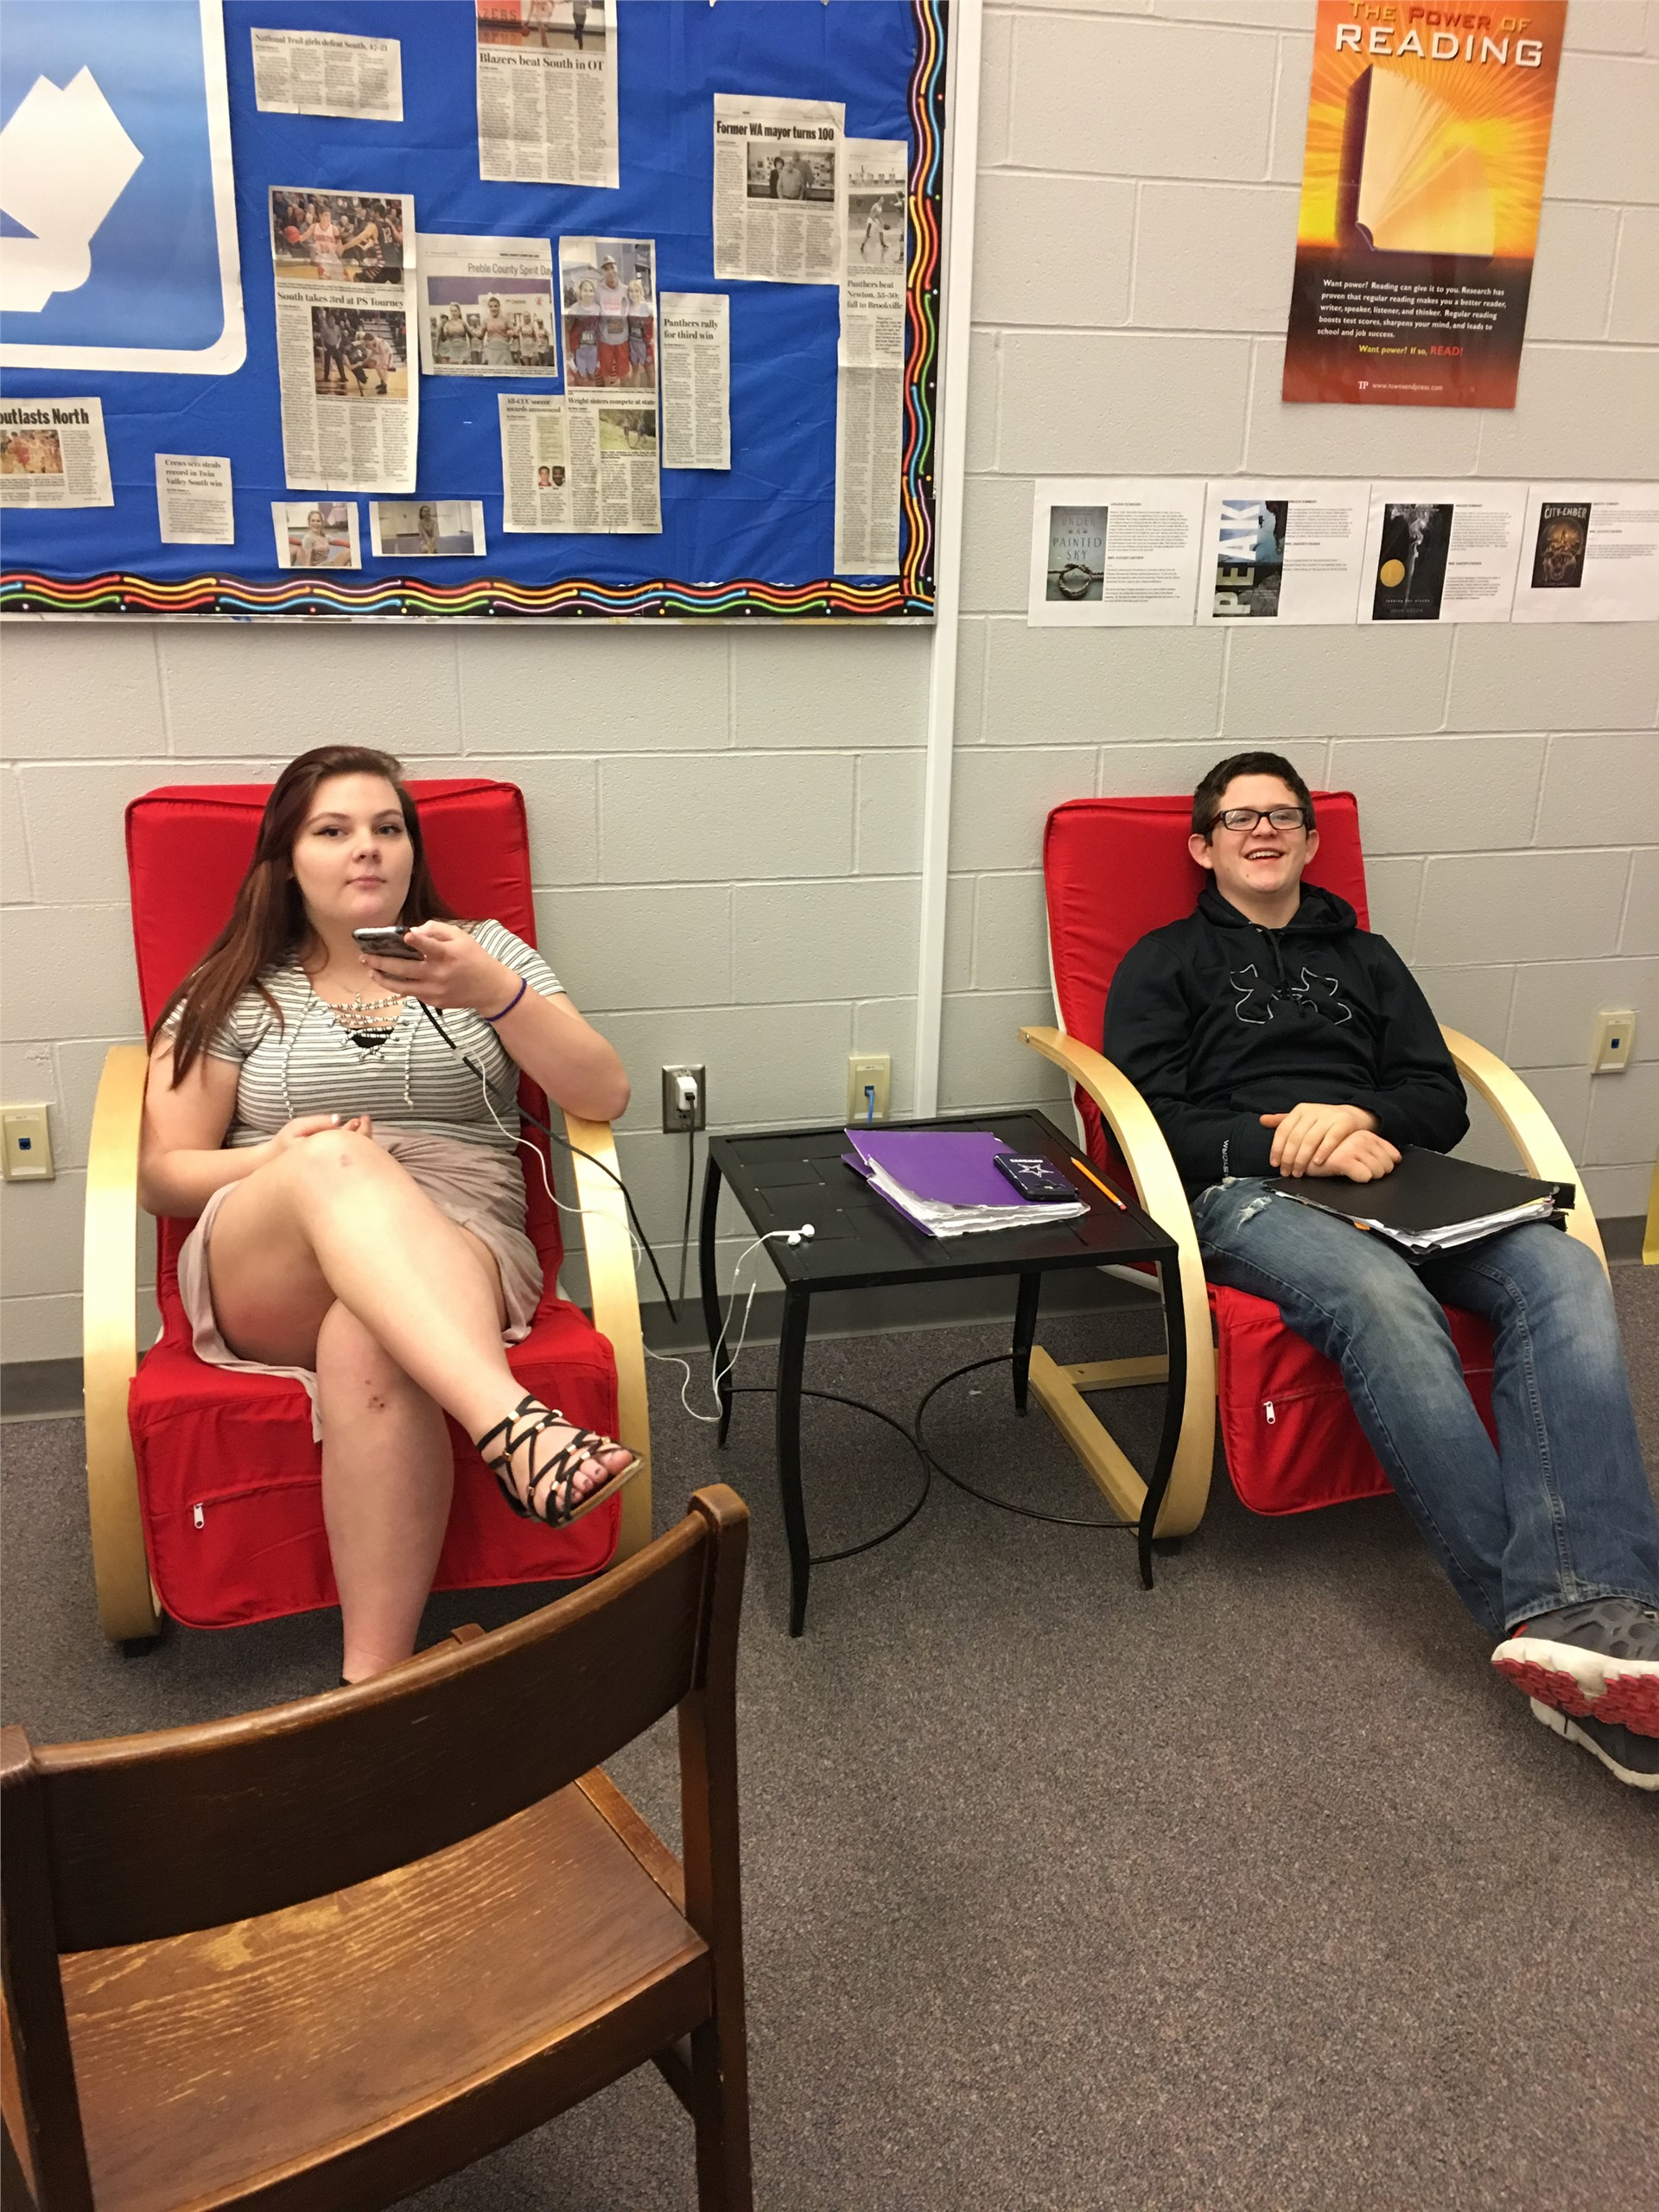 Students enjoying the comfortable furniture